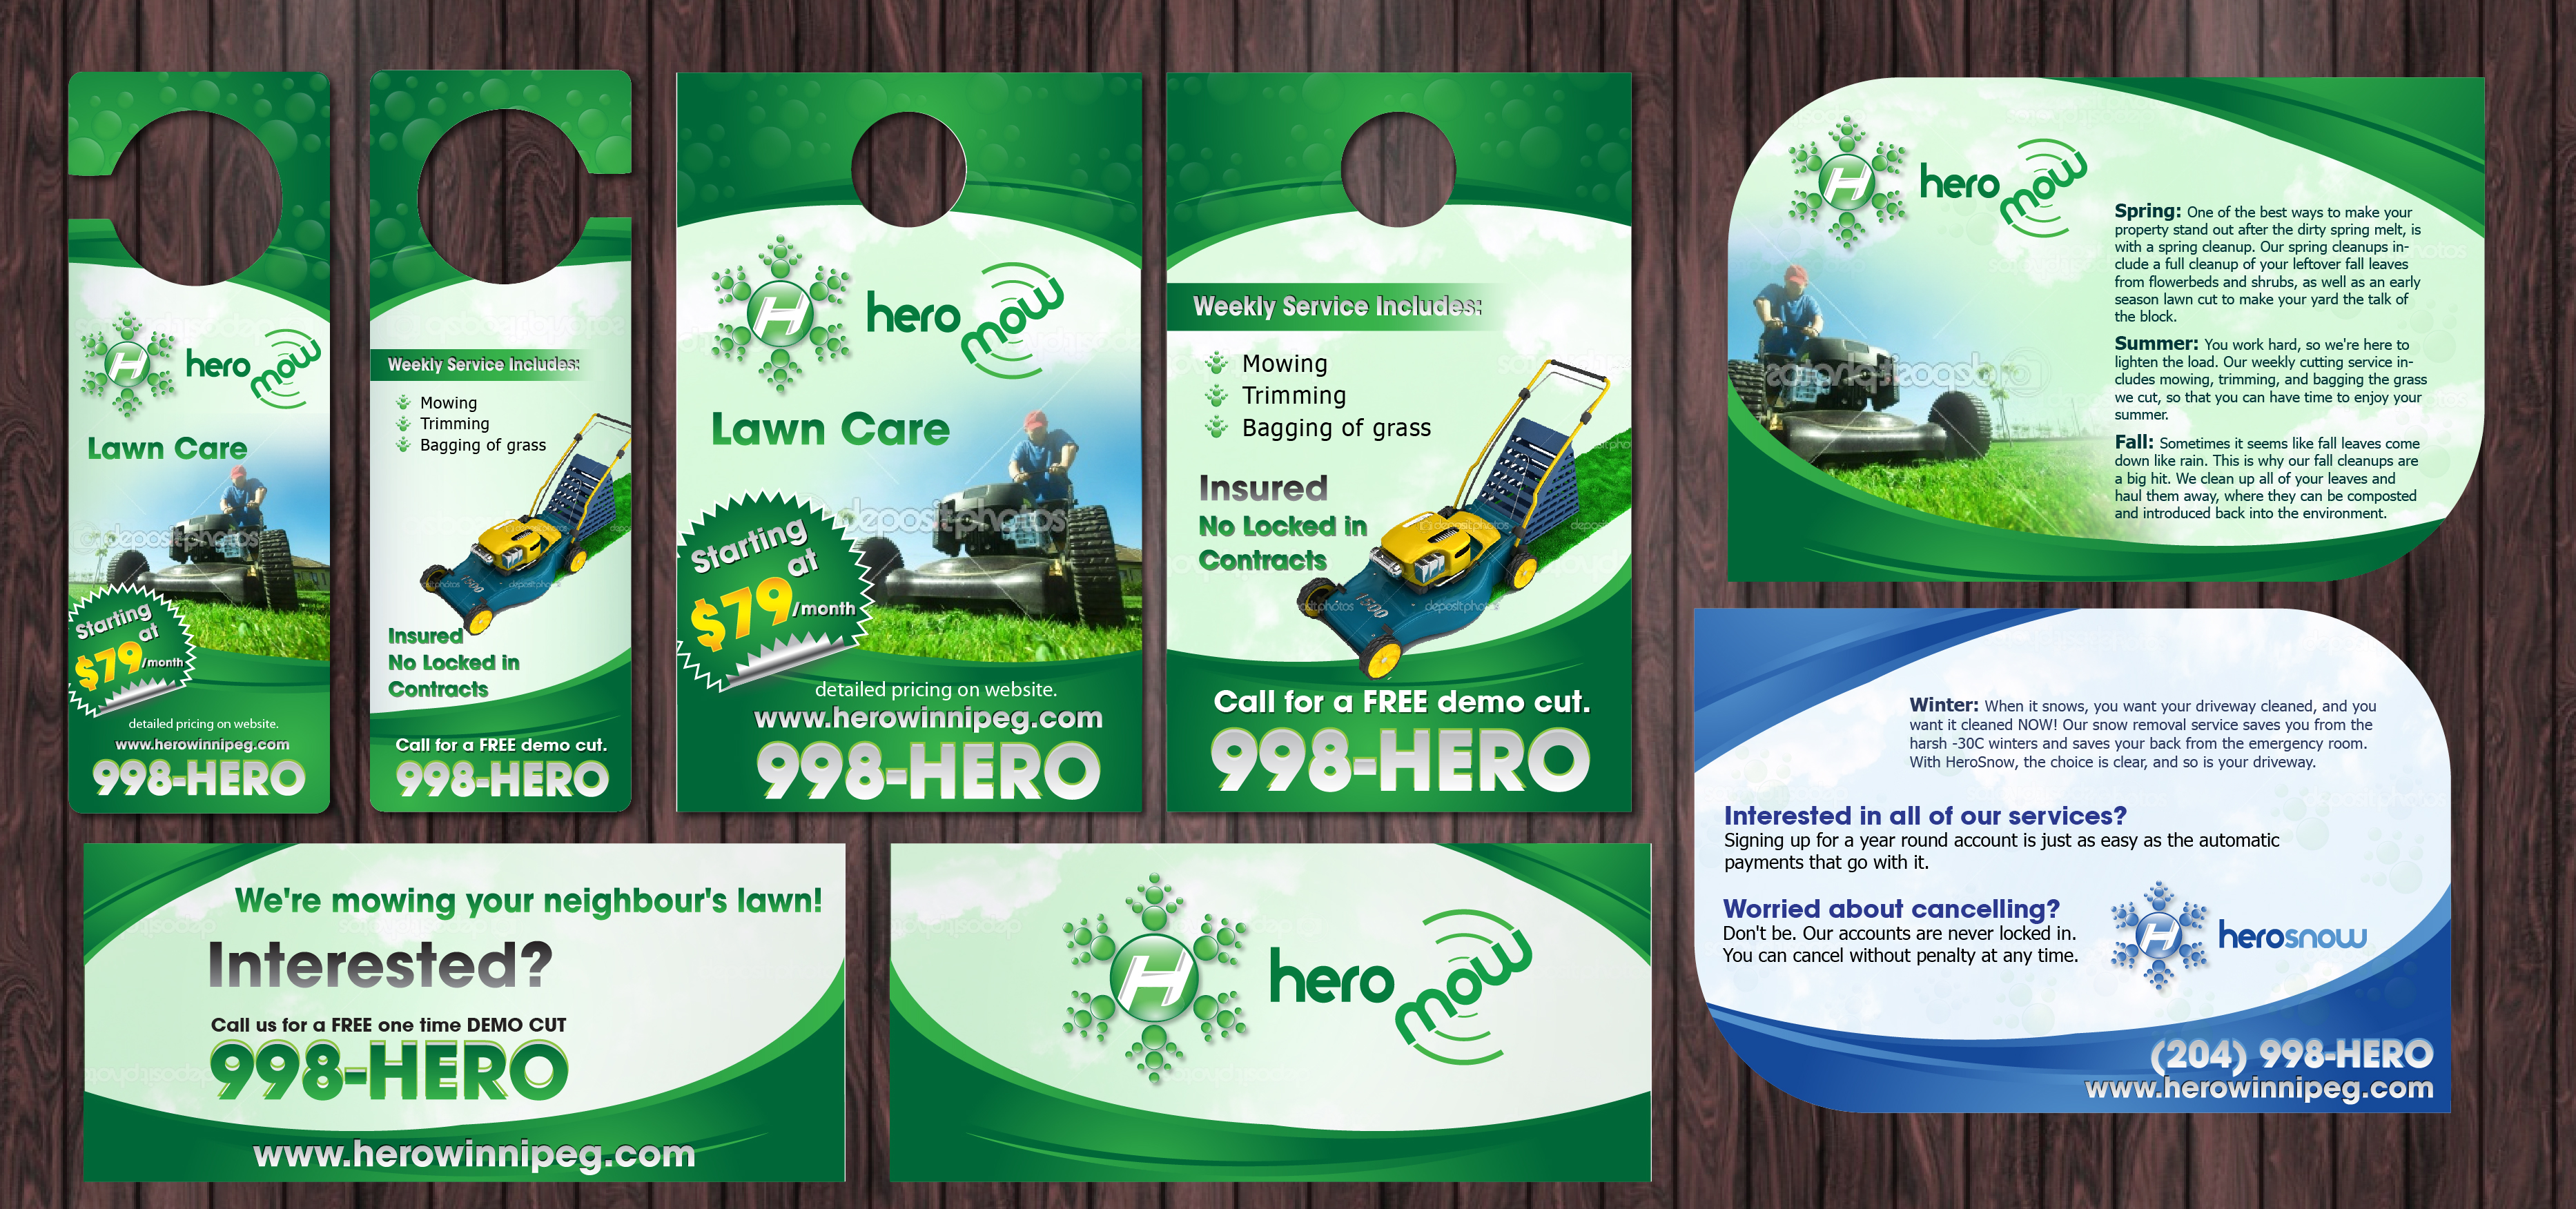 HeroSnow/HeroMow Marketing Materials - Construction